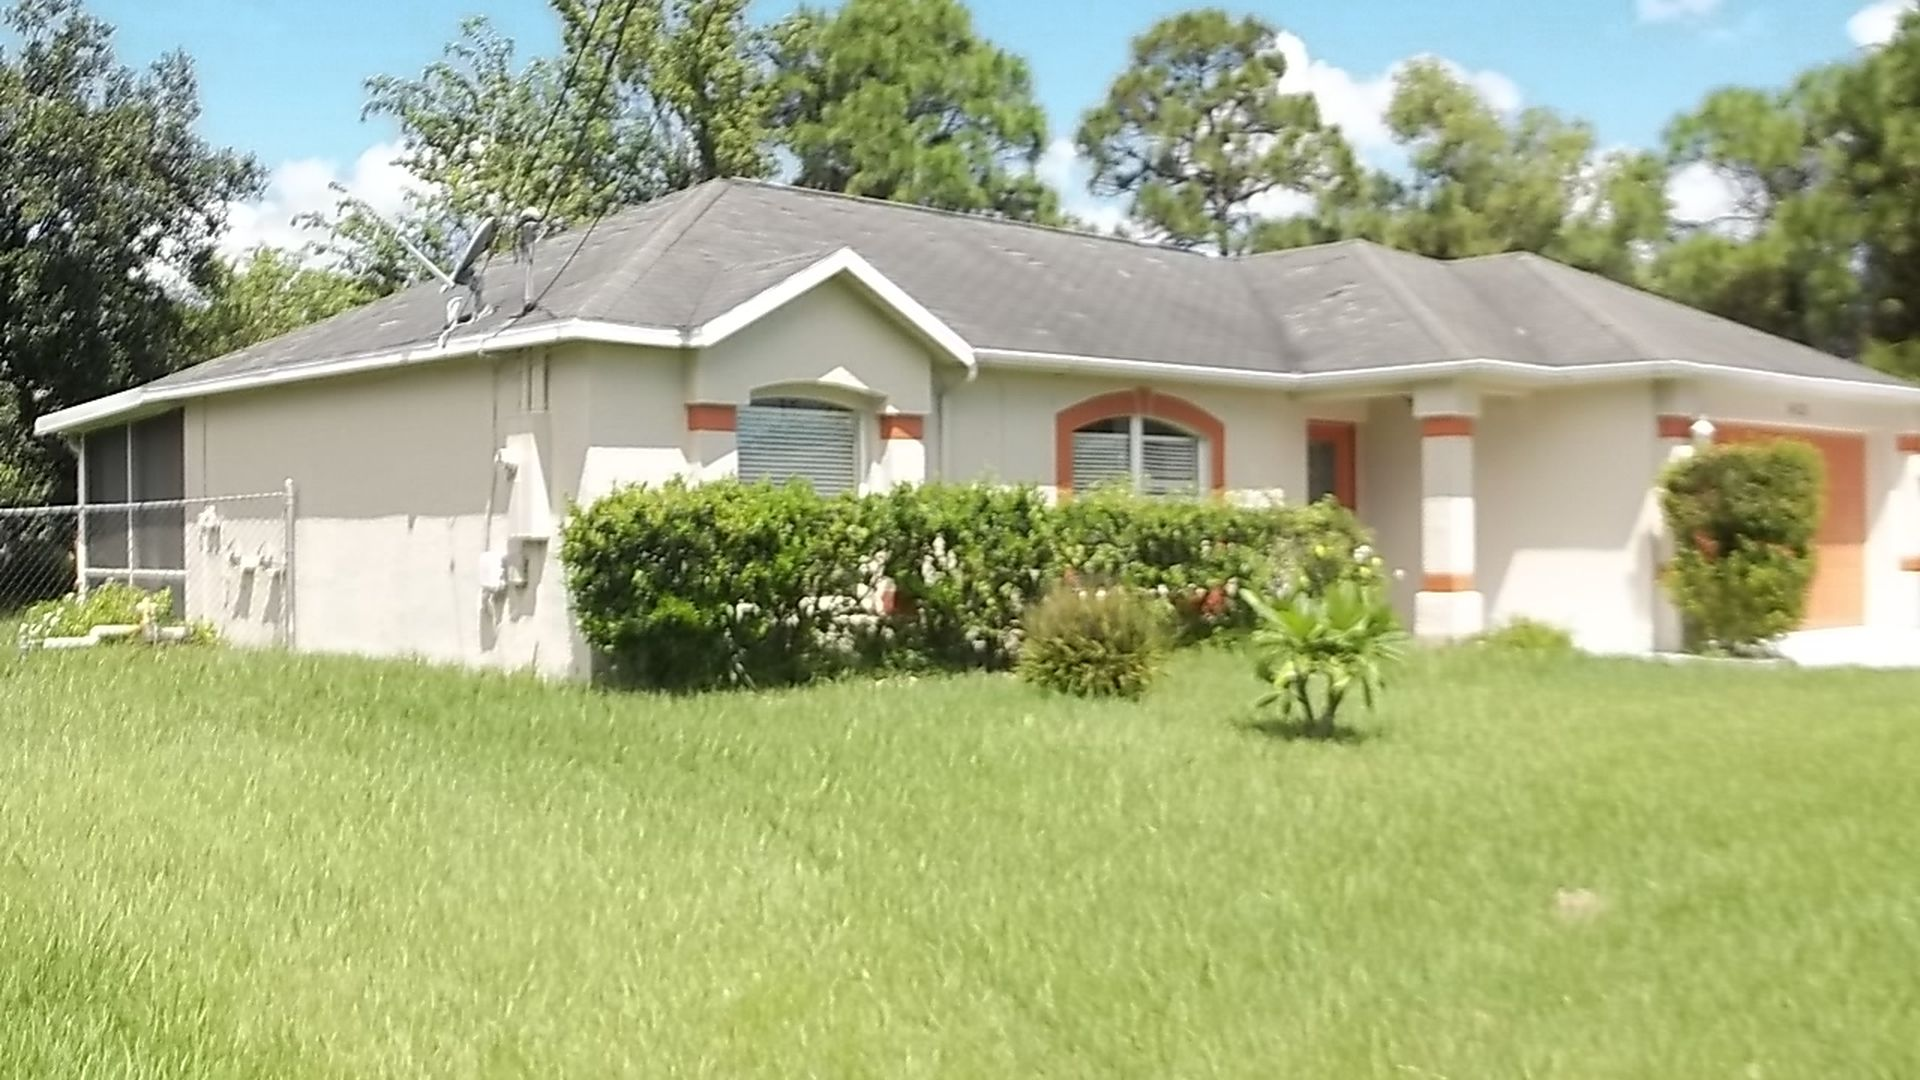 Houses For Rent in Port Saint Lucie FL - 339 Homes   Zillow